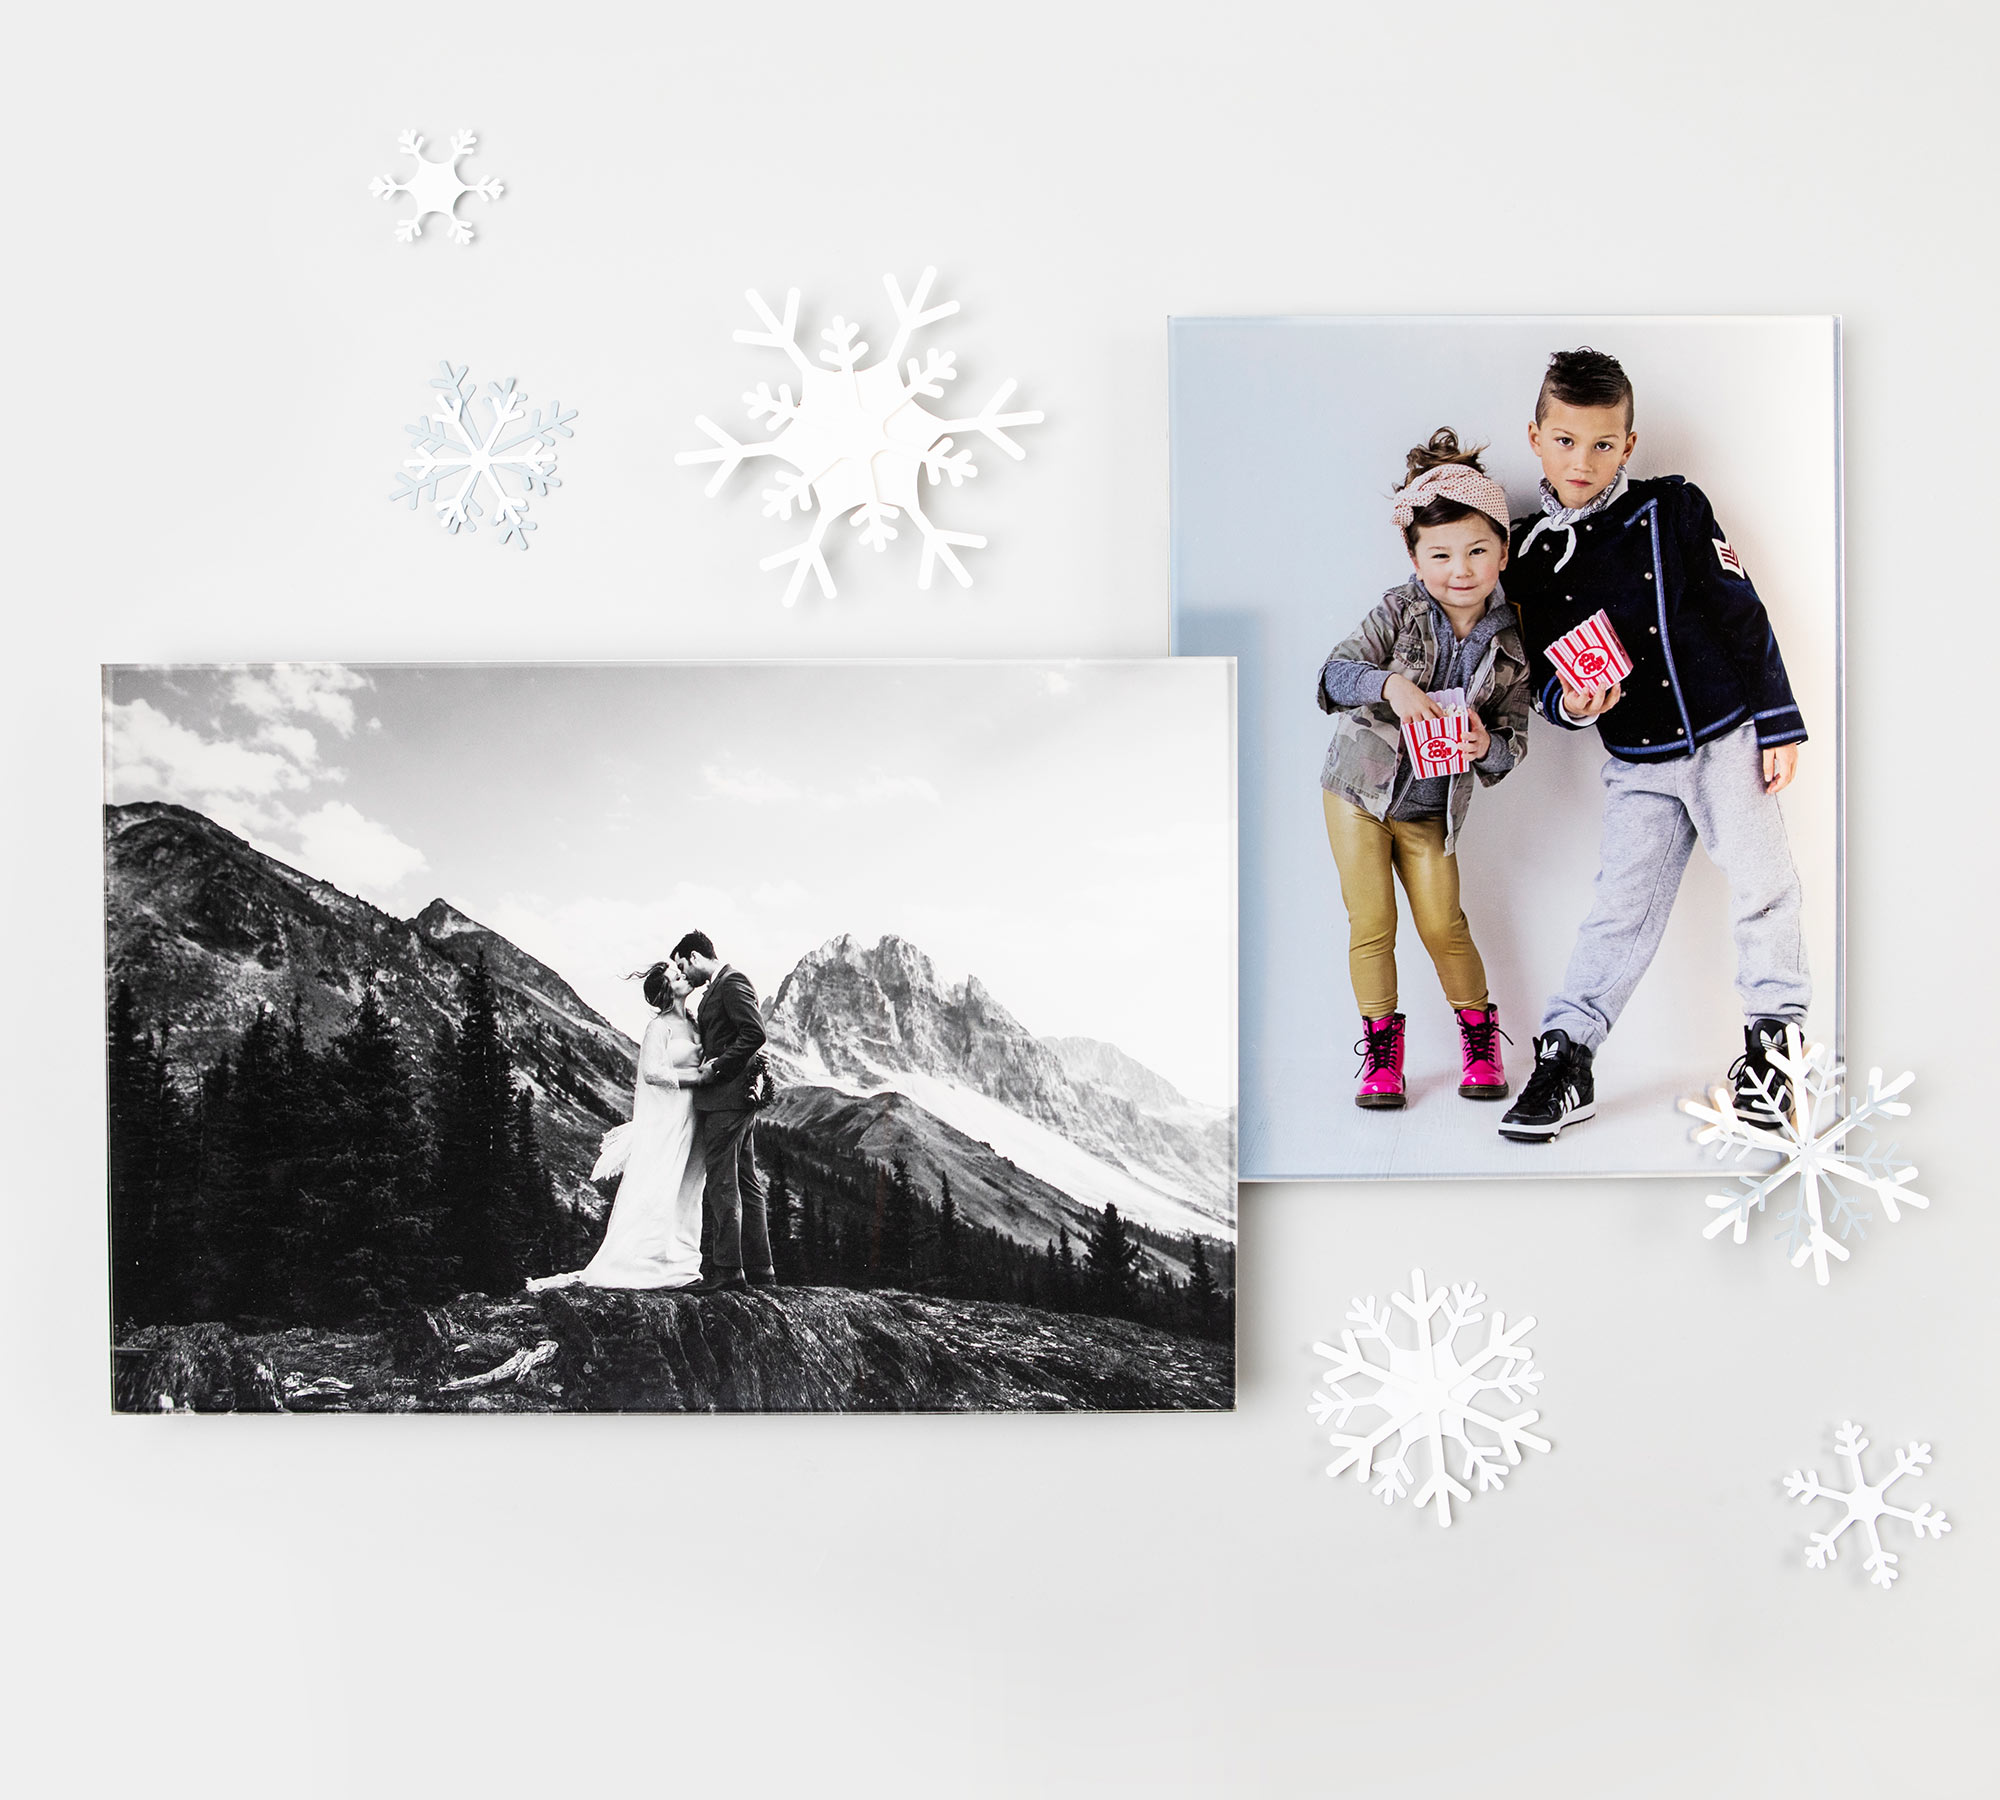 WHCC holiday product for professional photographers